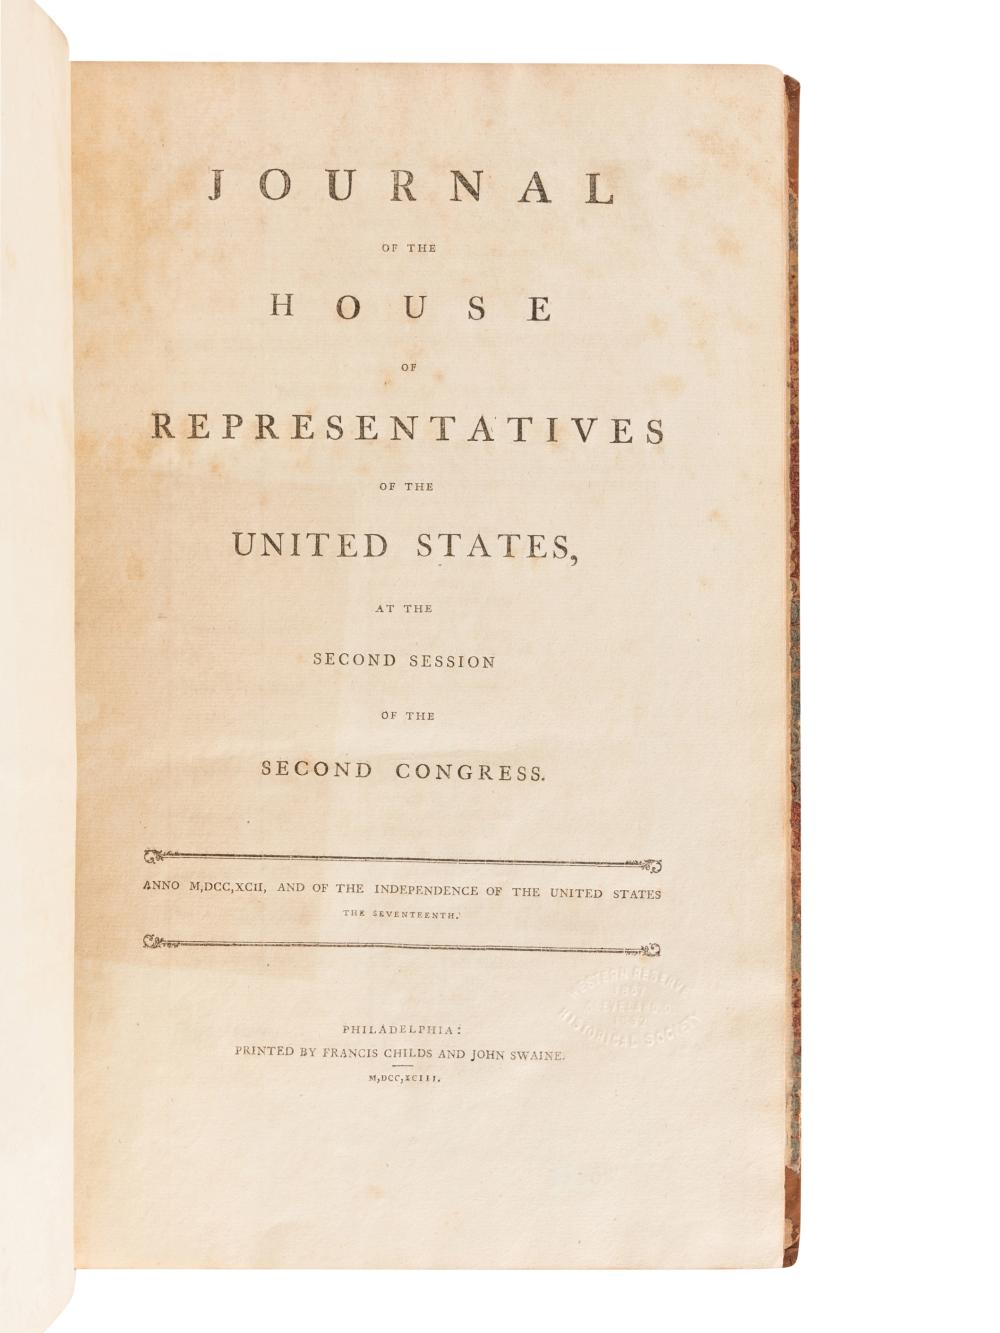 [UNITED STATES HOUSE OF REPRESENTATIVES]. Journal of the House of Representatives of the United States, at the Second Session of the Second Congress. Philadelphia: Francis Childs and John Swaine, 1793.